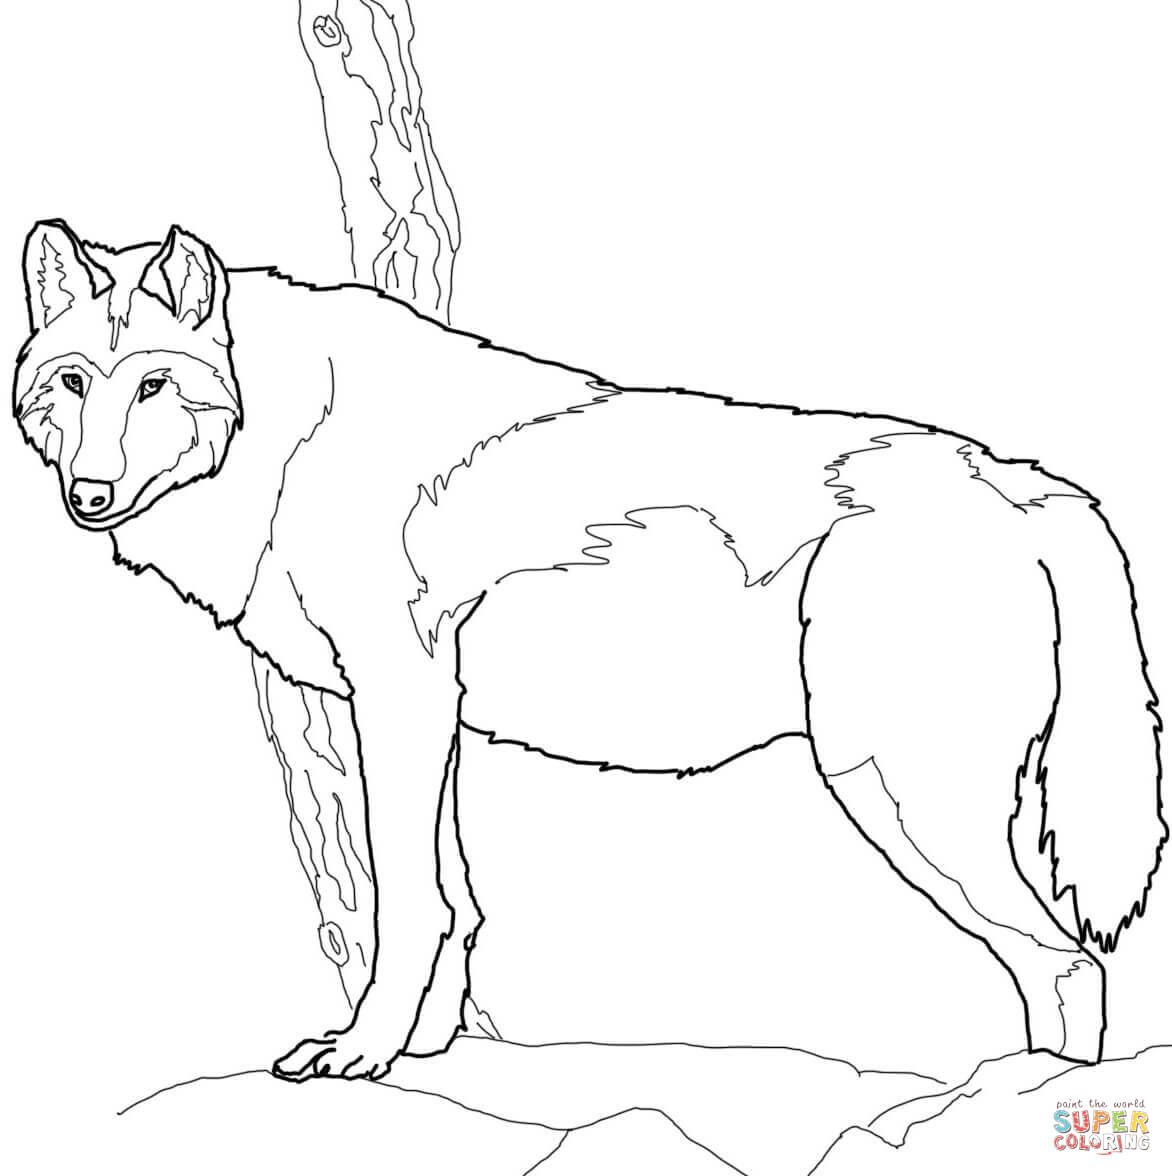 Arctic wolf coloring pages - digitalspace.info